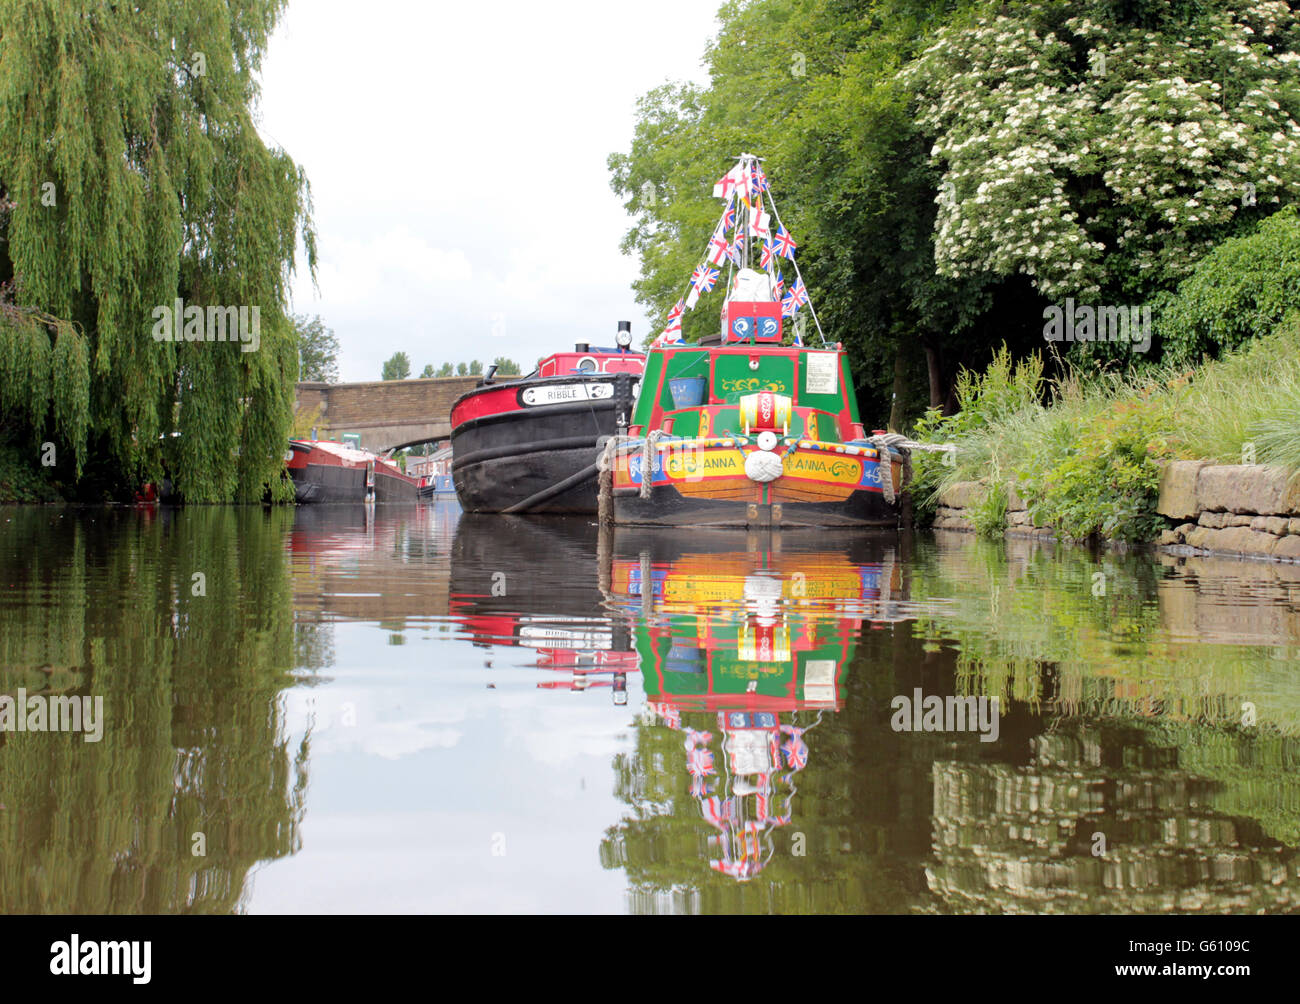 Boats on the Leeds and Liverpool canal in Burscough at the Wharf, West Lancashire, view from water level. - Stock Image